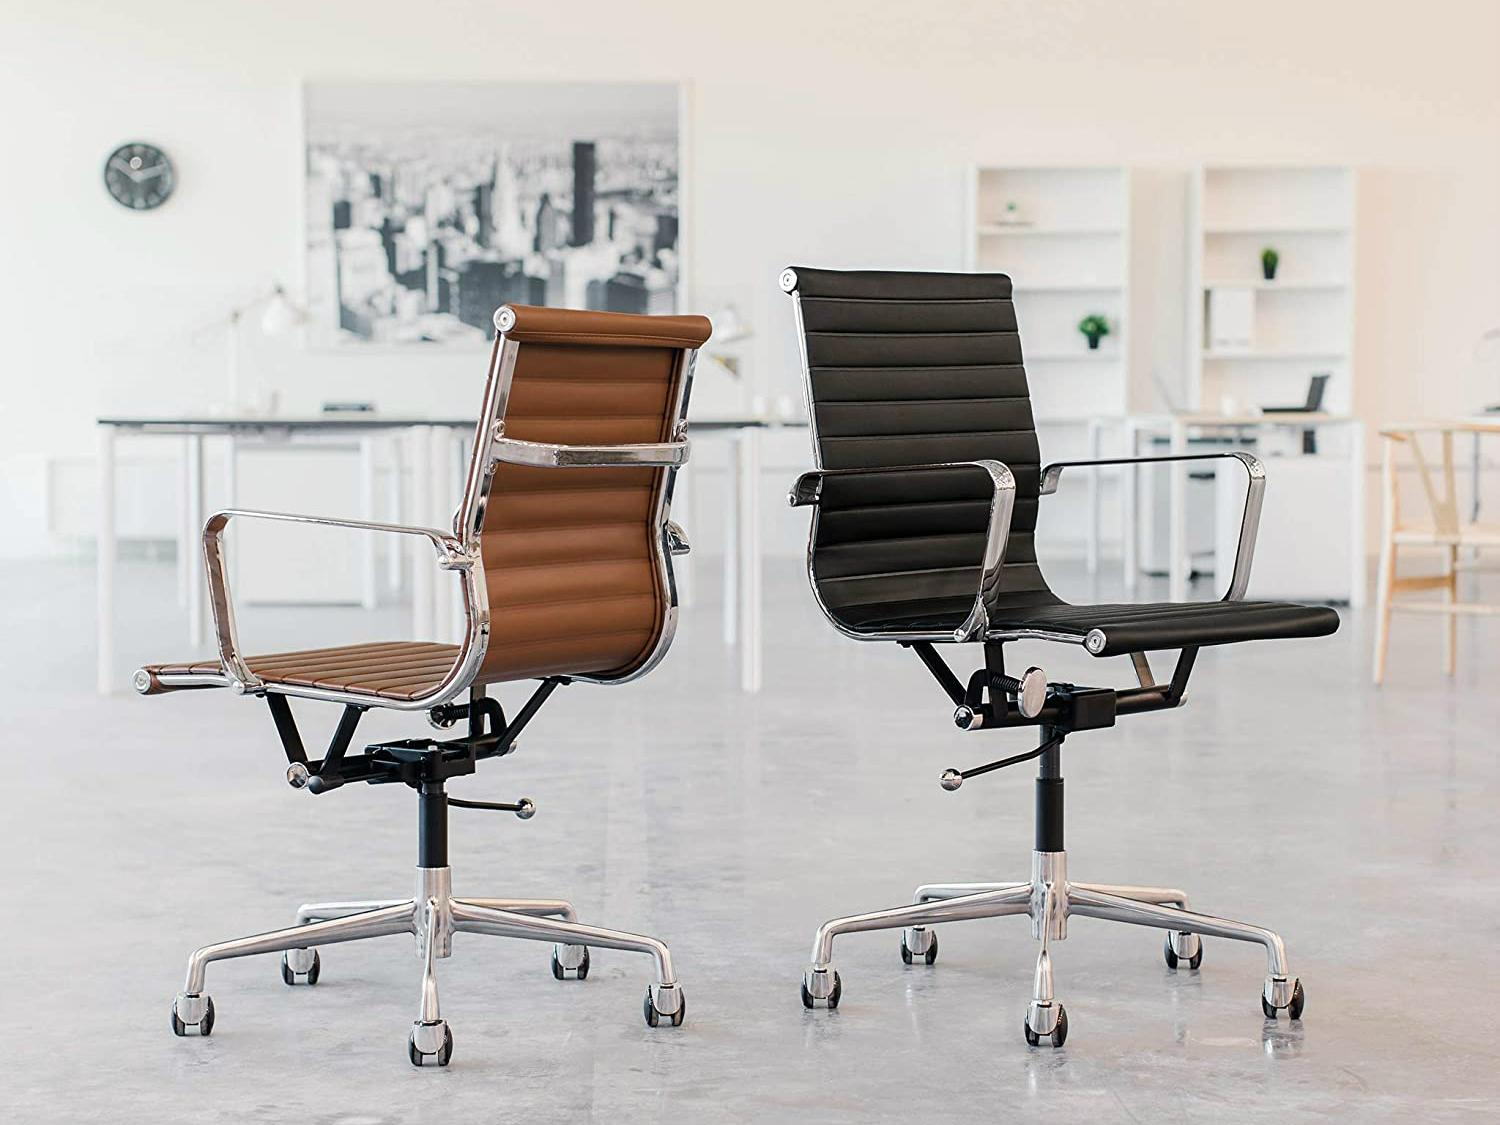 The Best-Designed Office Chairs For a Stylish and Productive Home Office